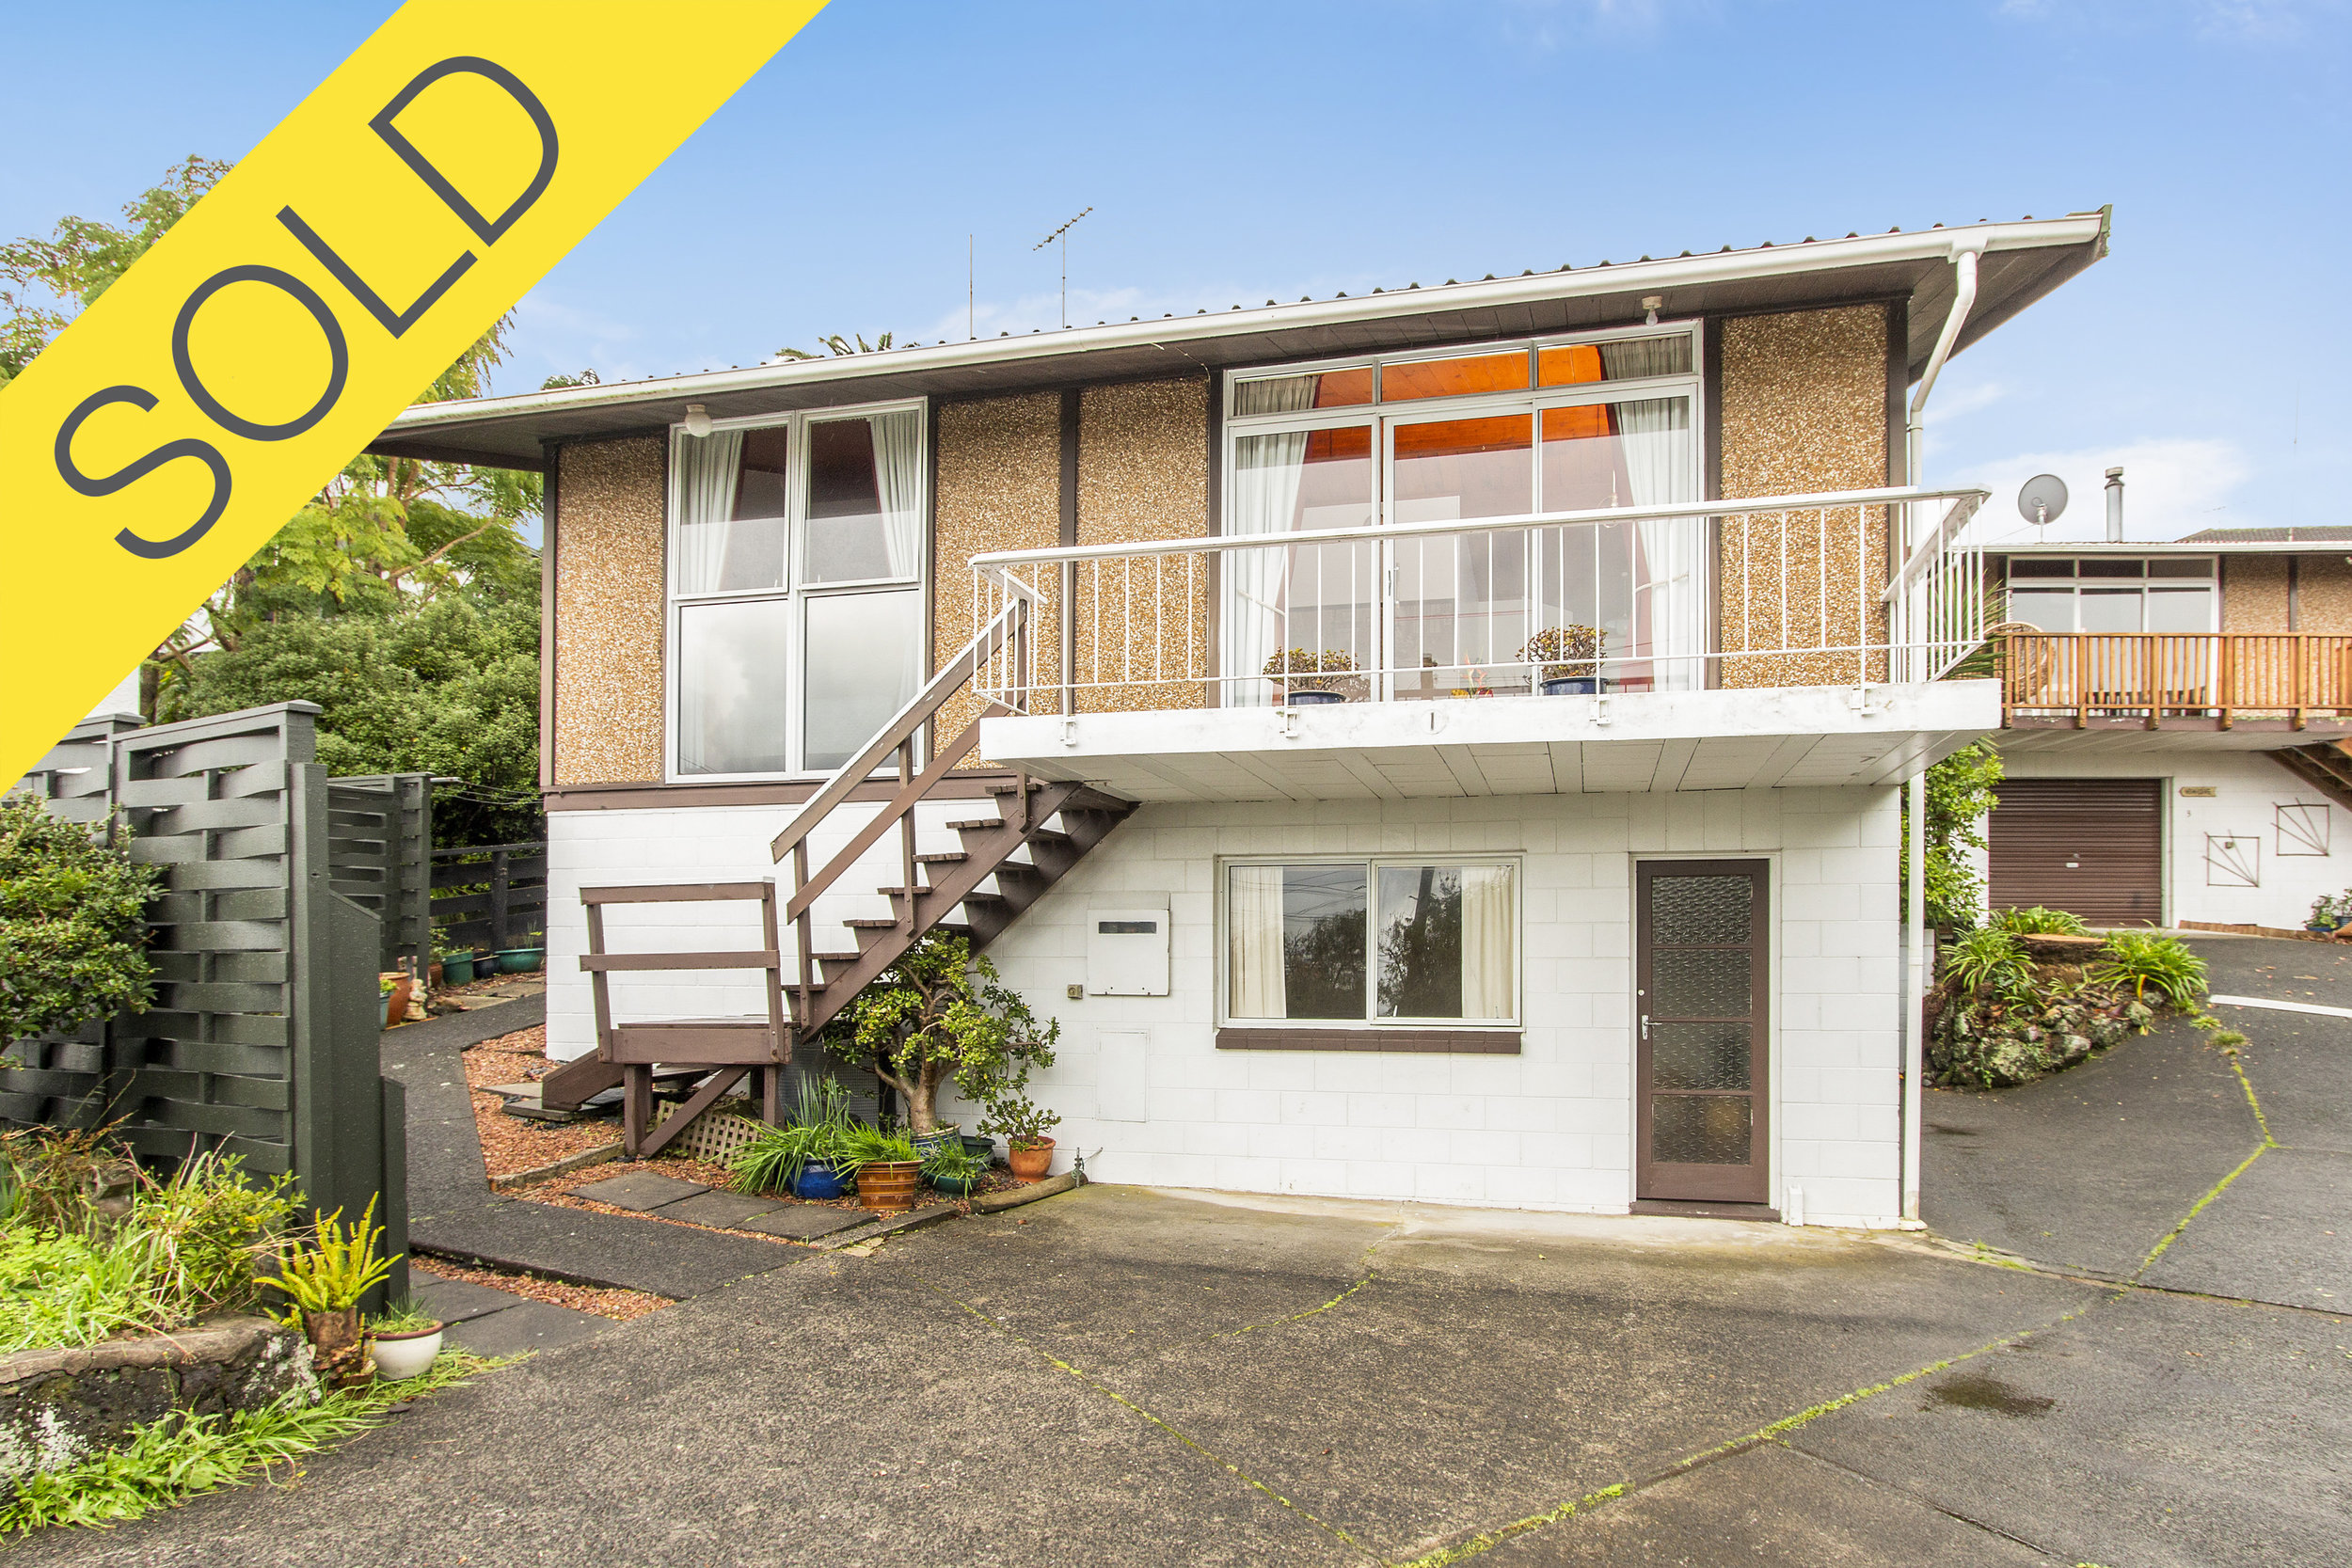 1/62A Ngatiawa Street, One Tree Hill, Auckland - SOLD JUNE 20182 Beds | 1 Bath | 2 Parking